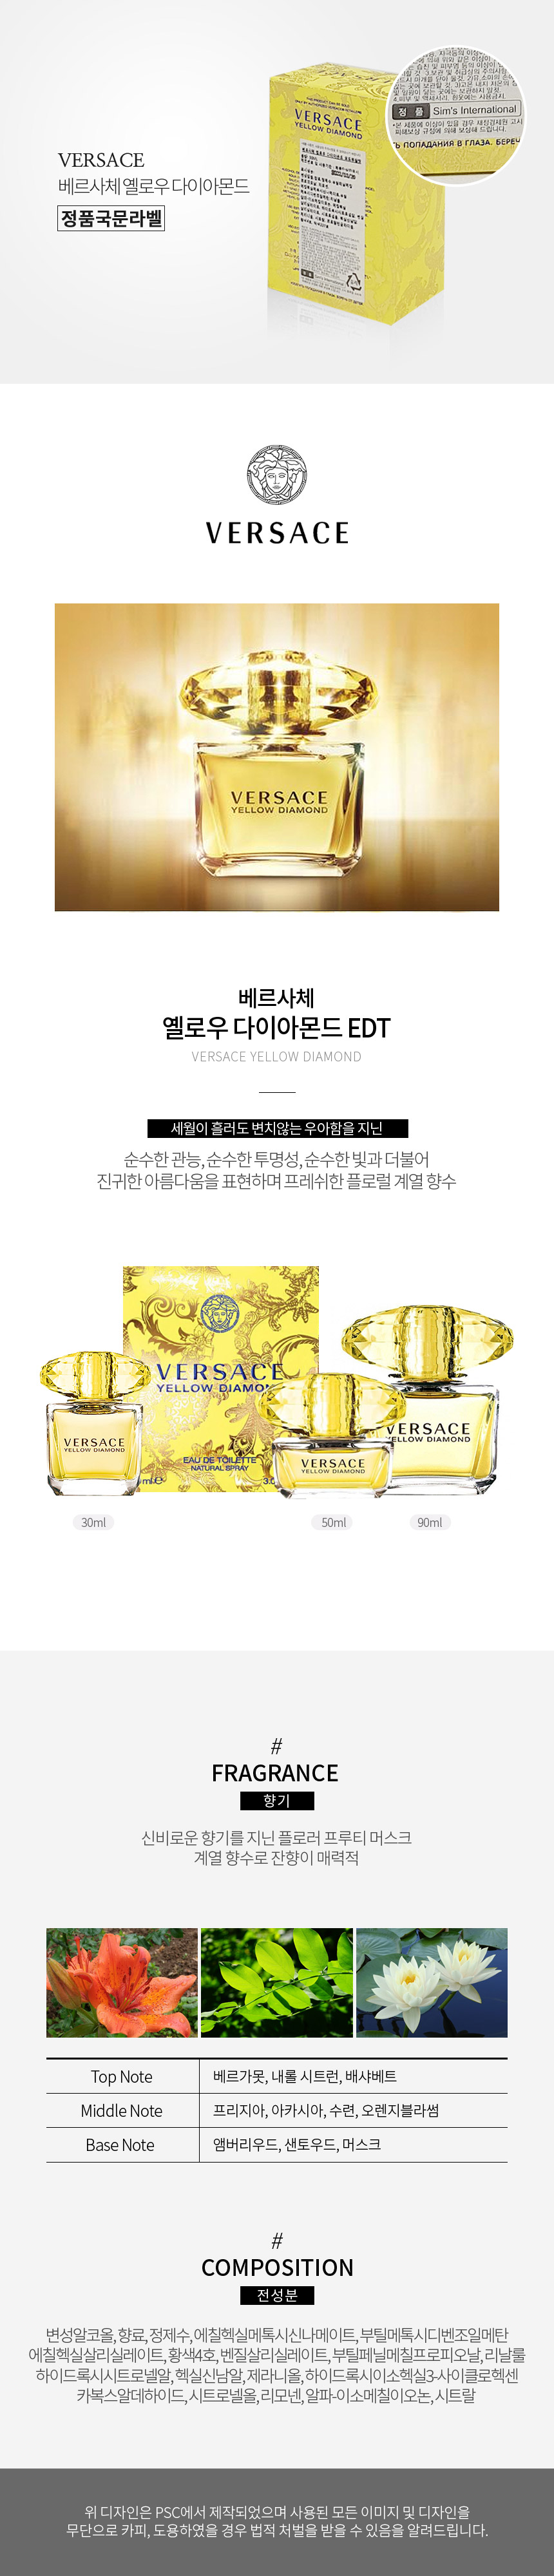 Versace_yellow_diamond_page.jpg